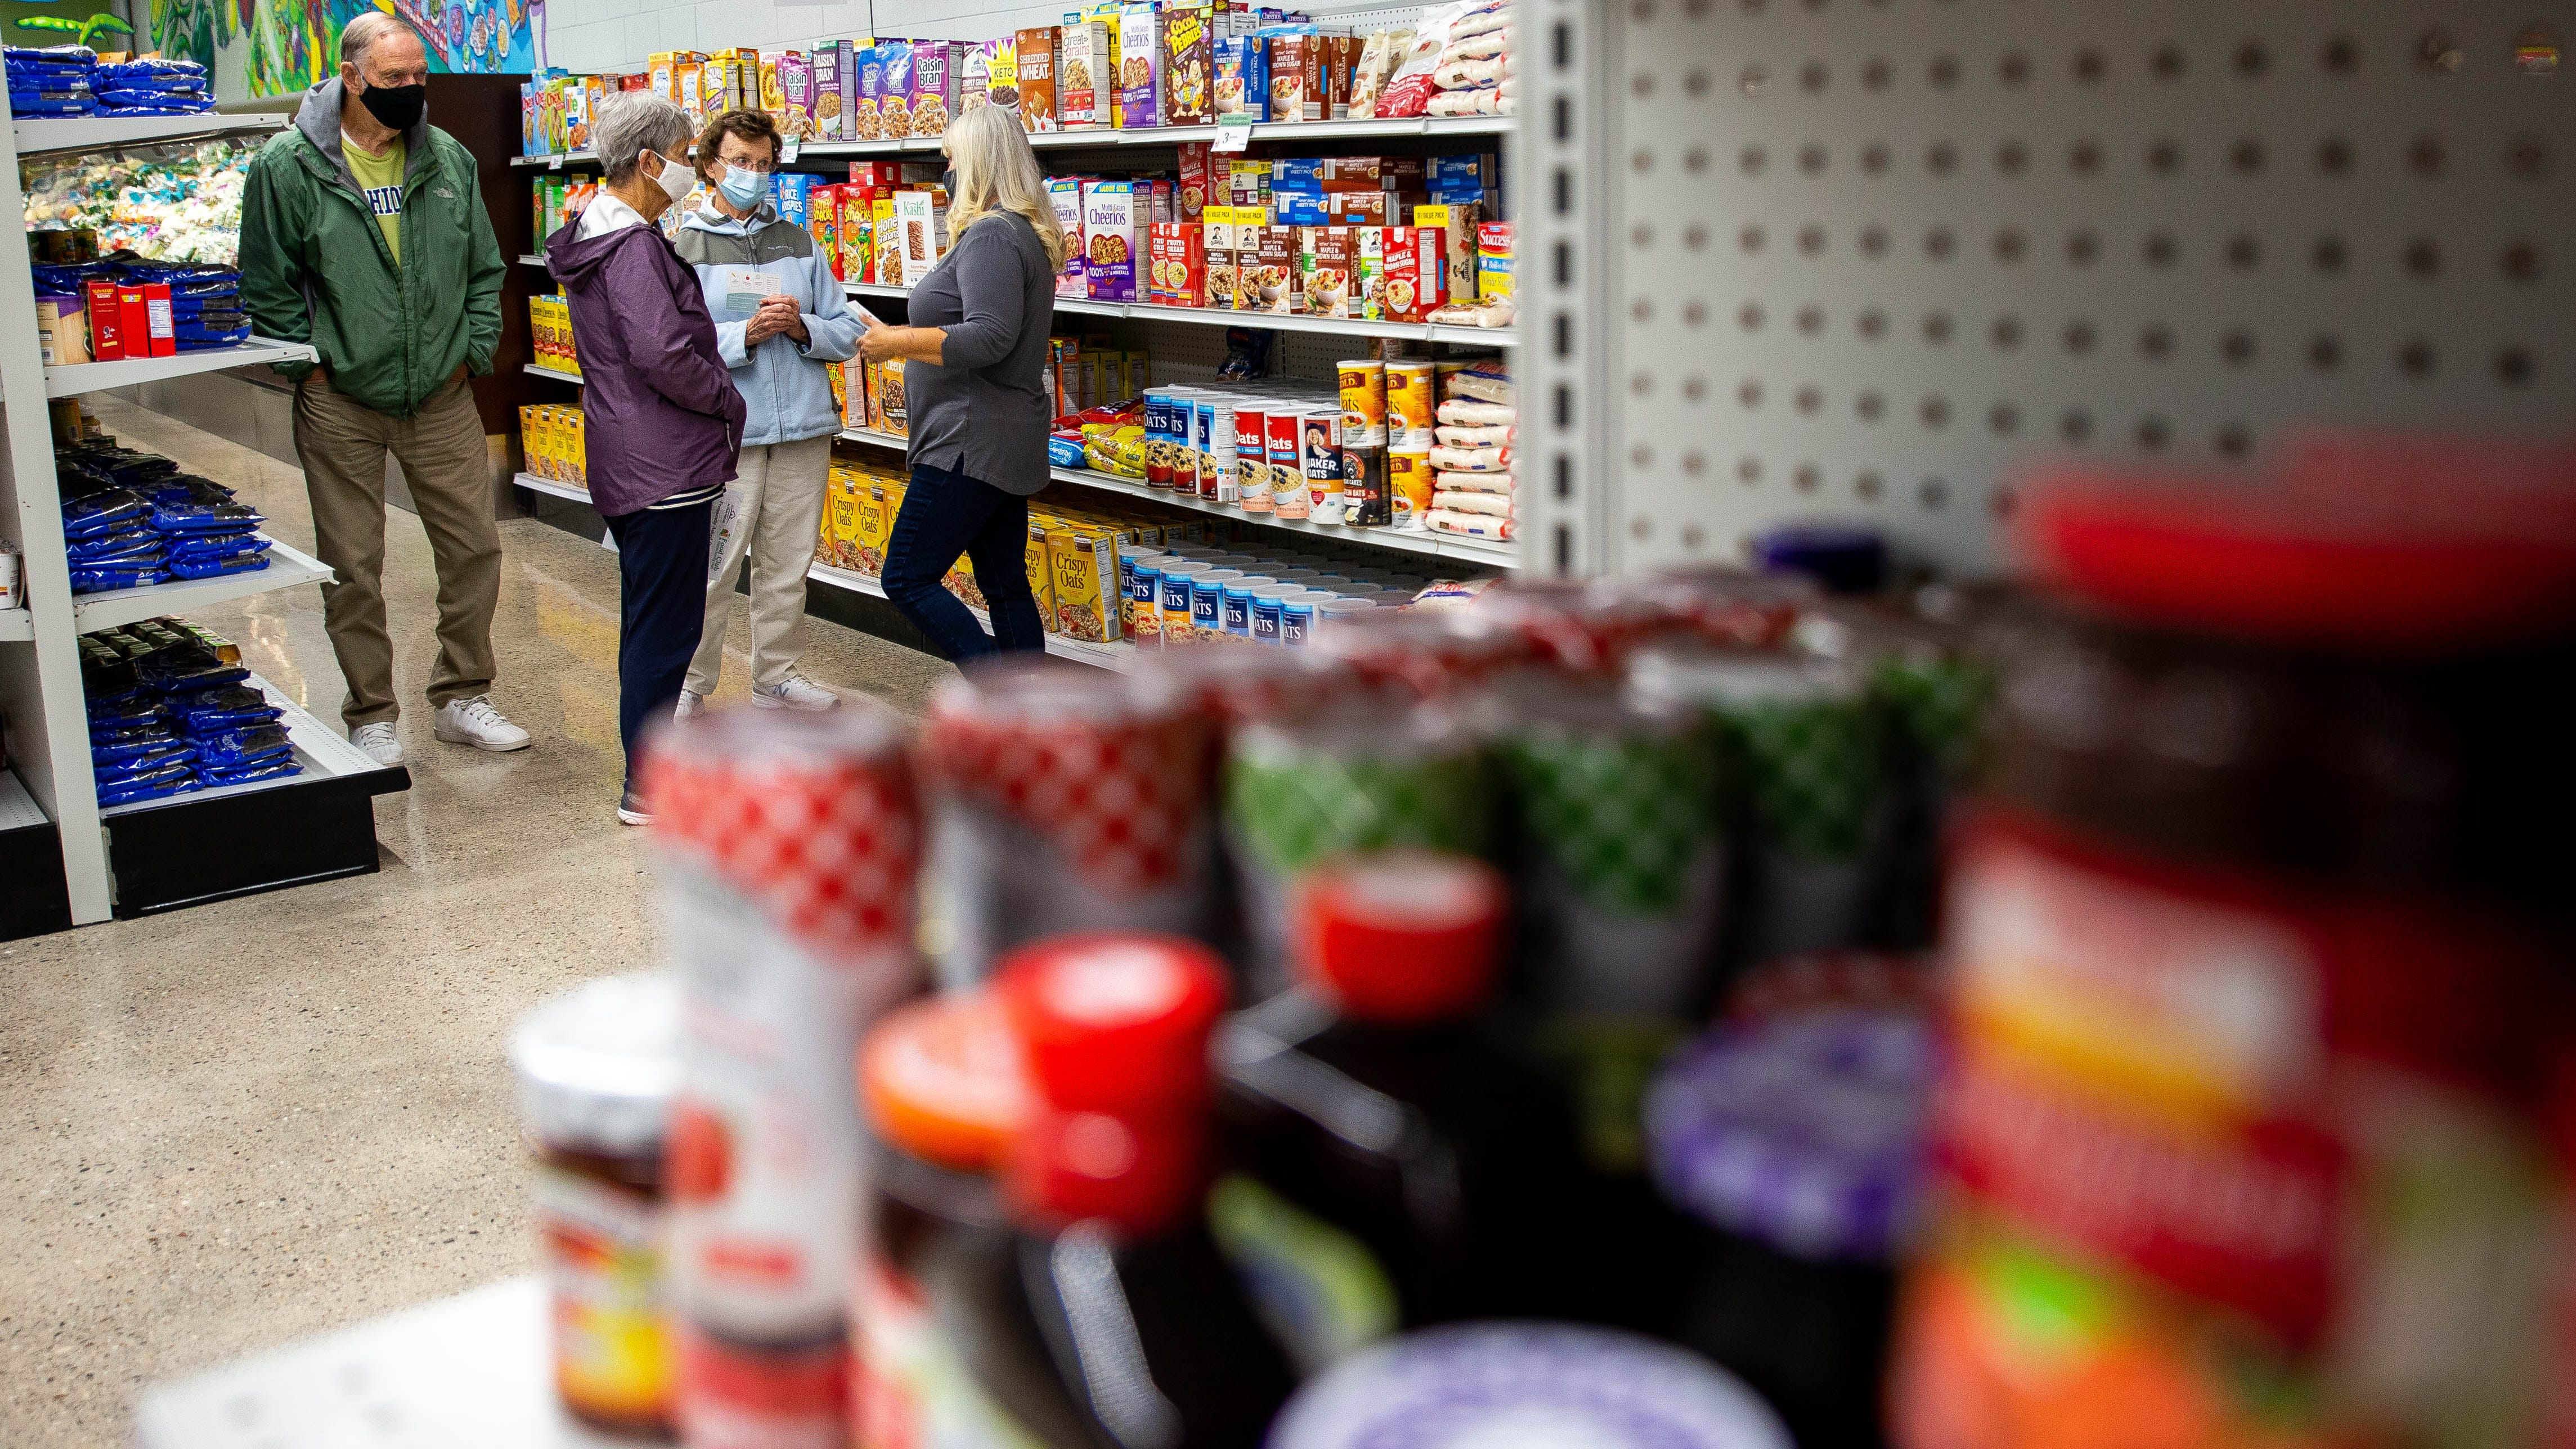 Community Action House opens grocery-store-like Food Club